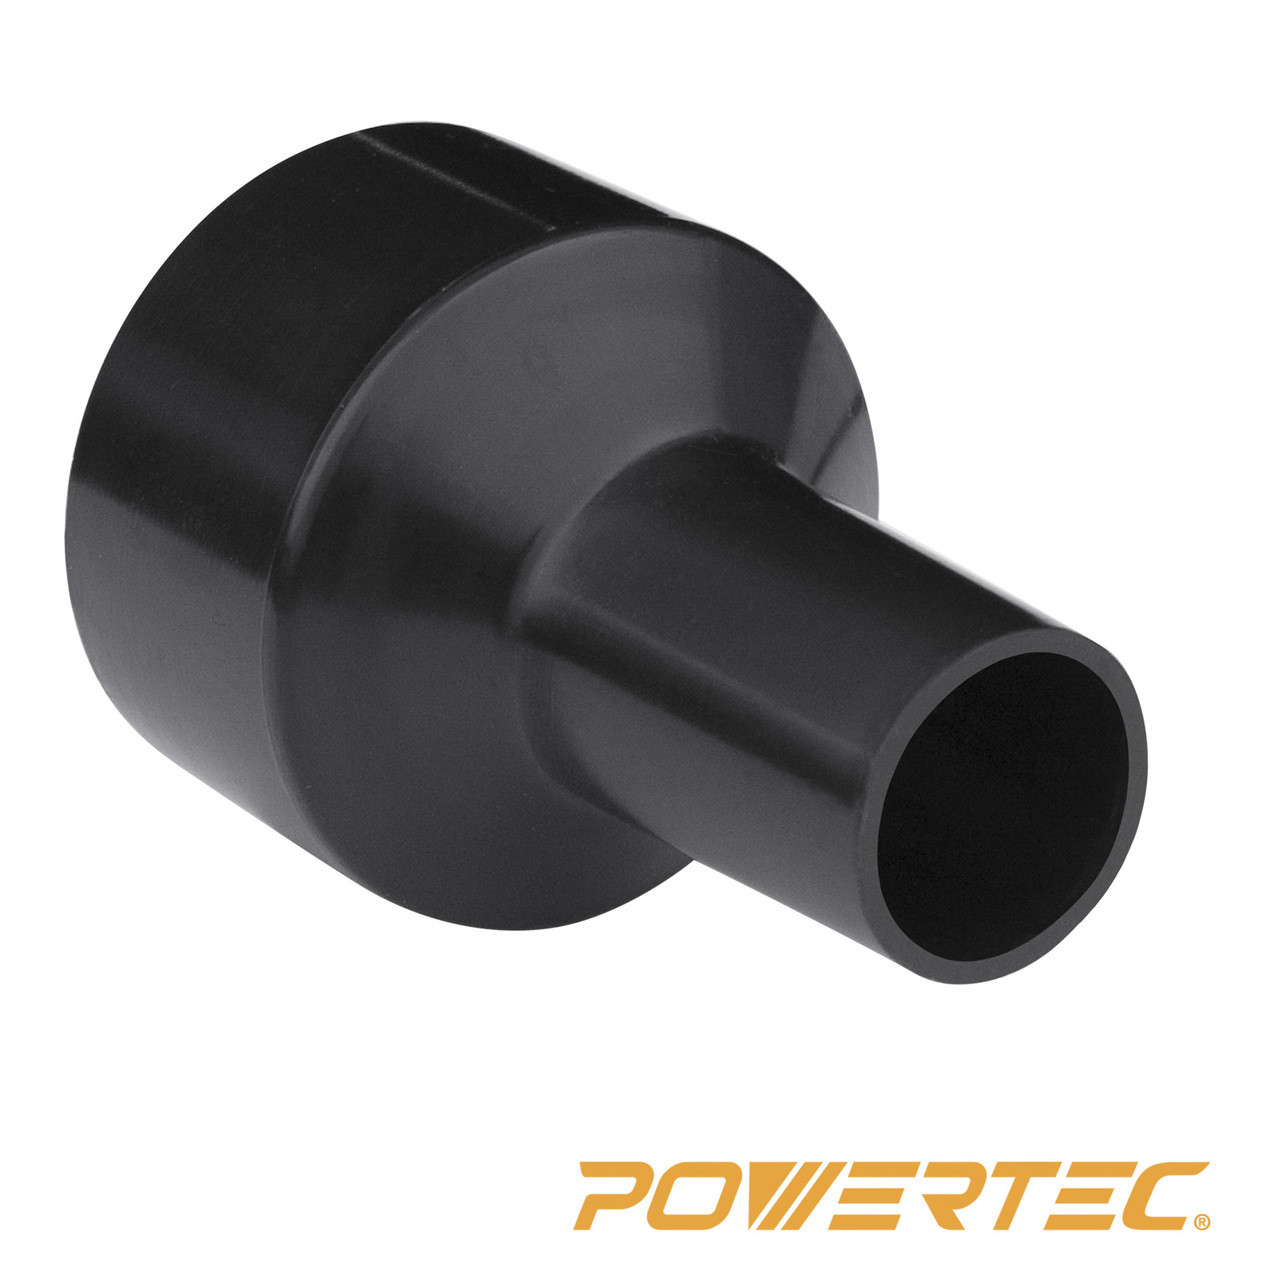 70140 2 1 2 Inch To 1 1 4 Inch Reducer Powertec